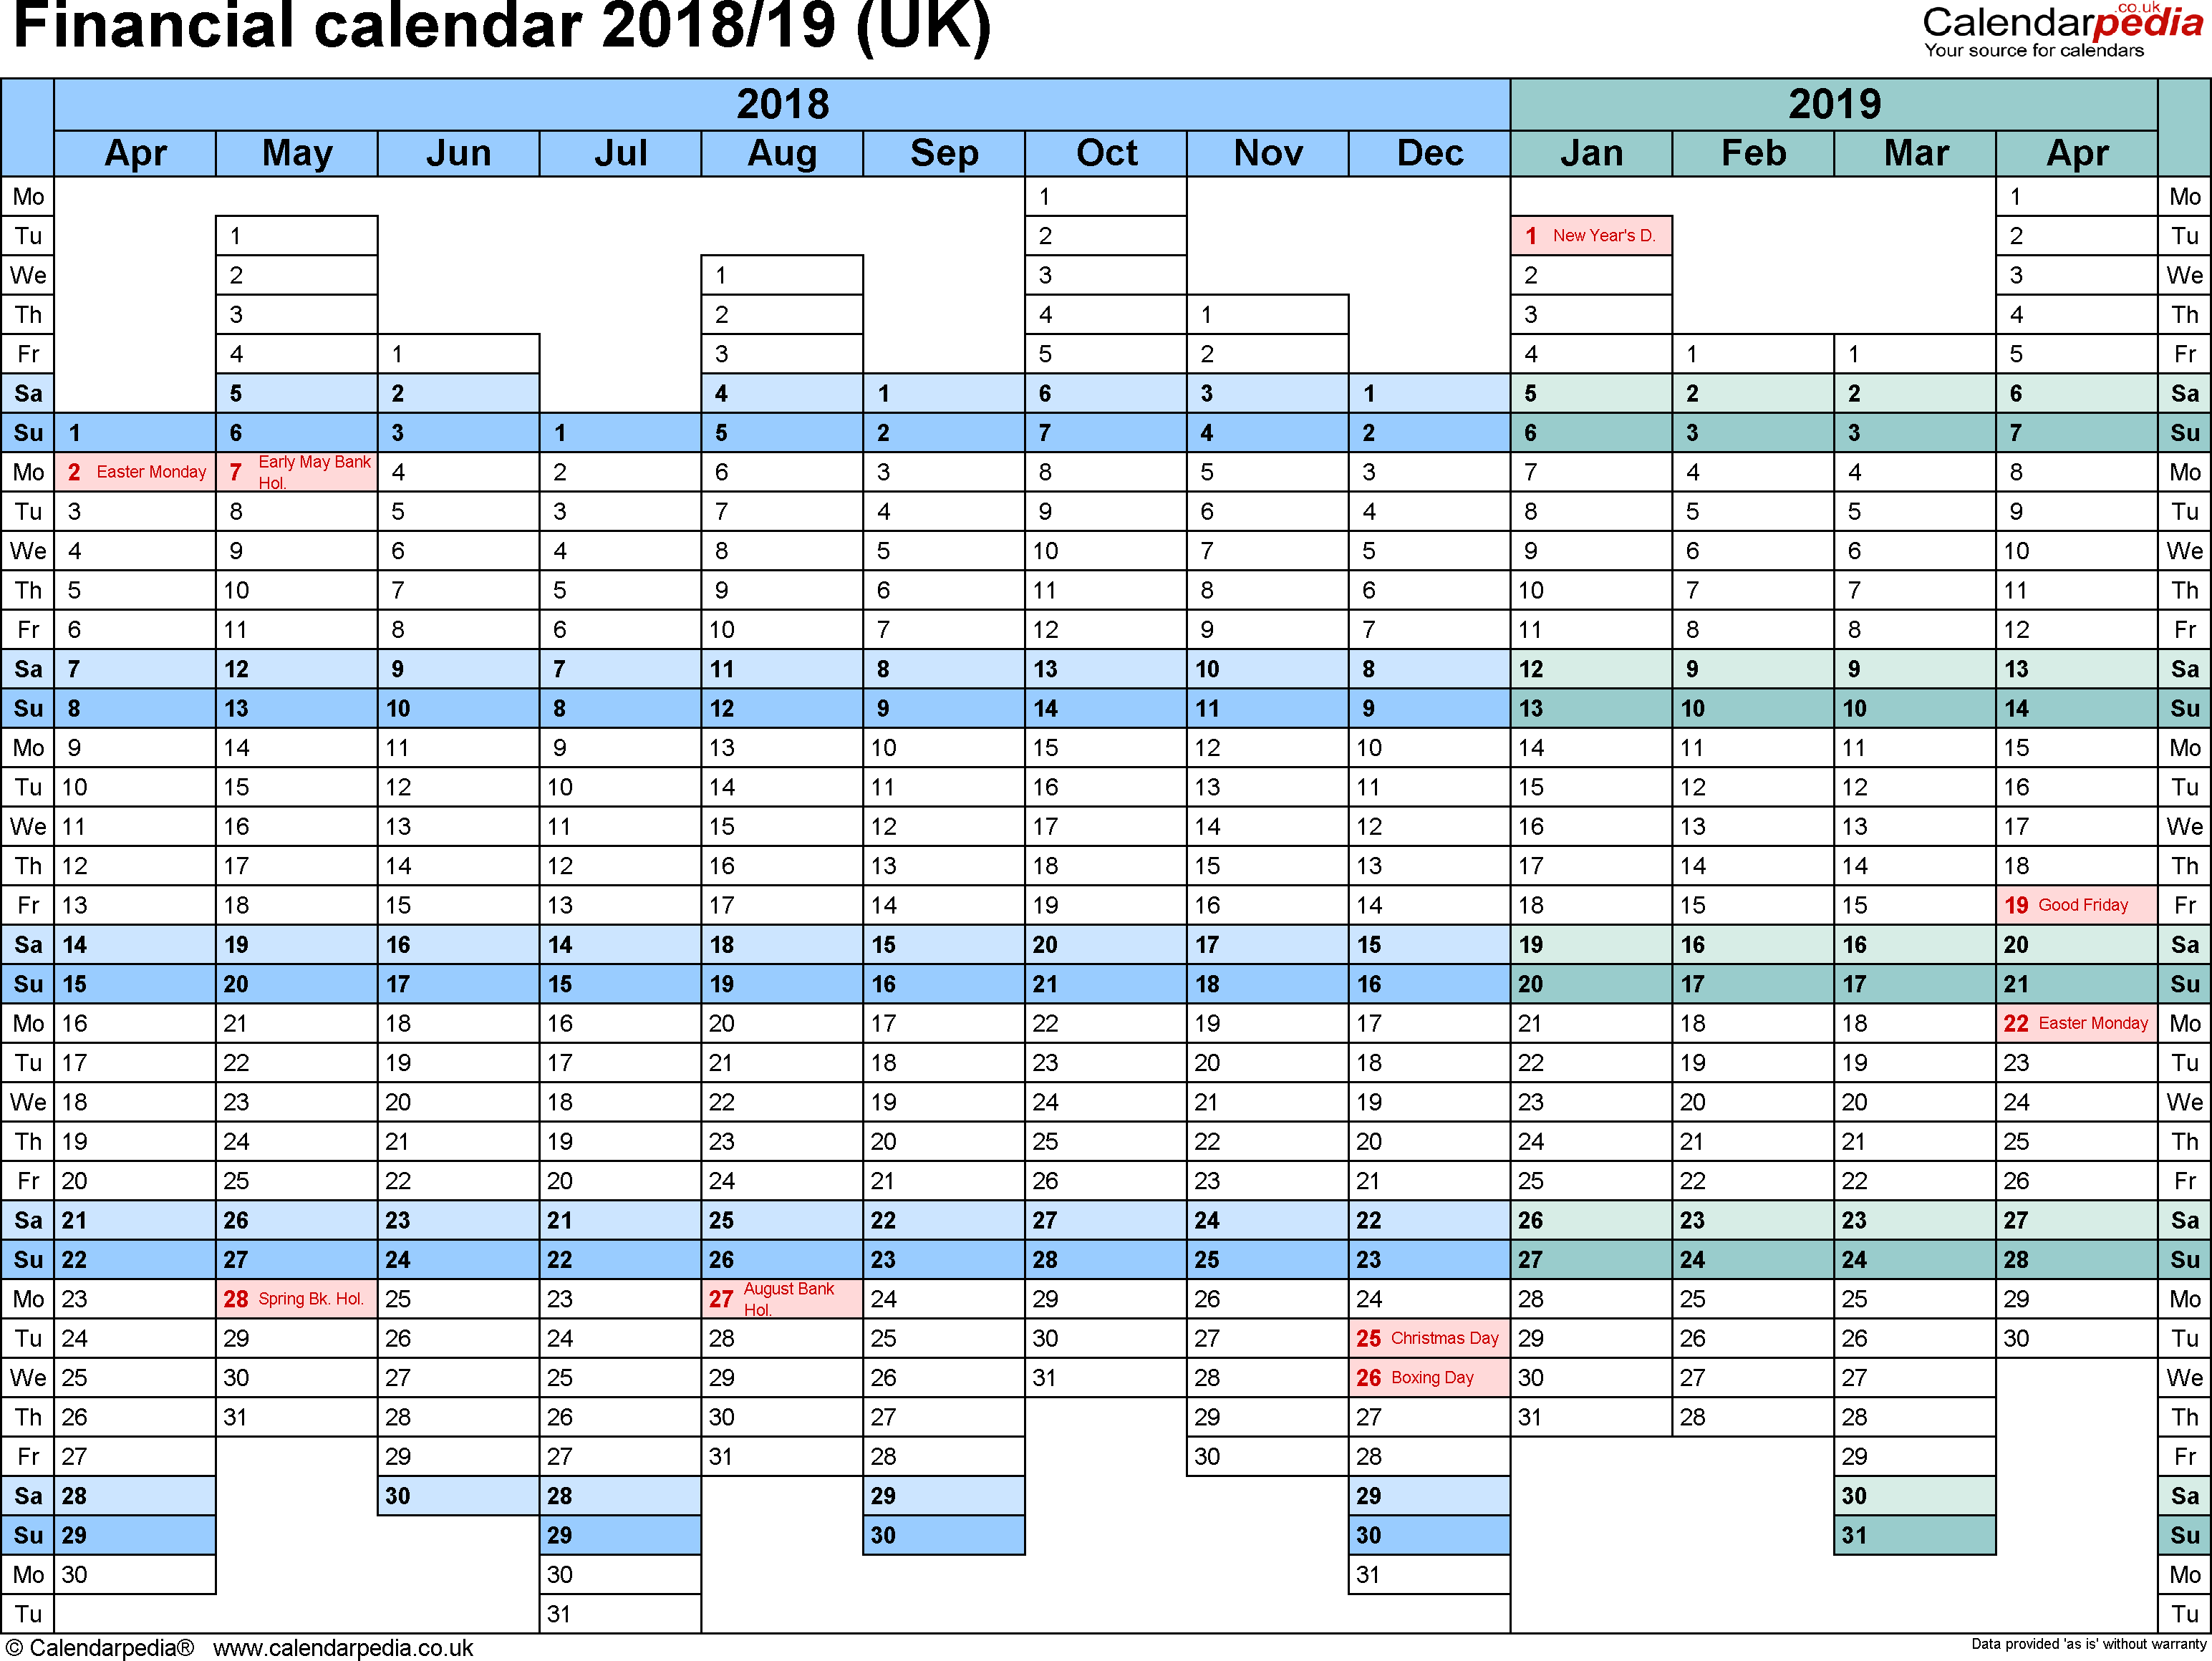 Fiscal Year 2019 Calendar Template With Financial Calendars 2018 19 UK In PDF Format